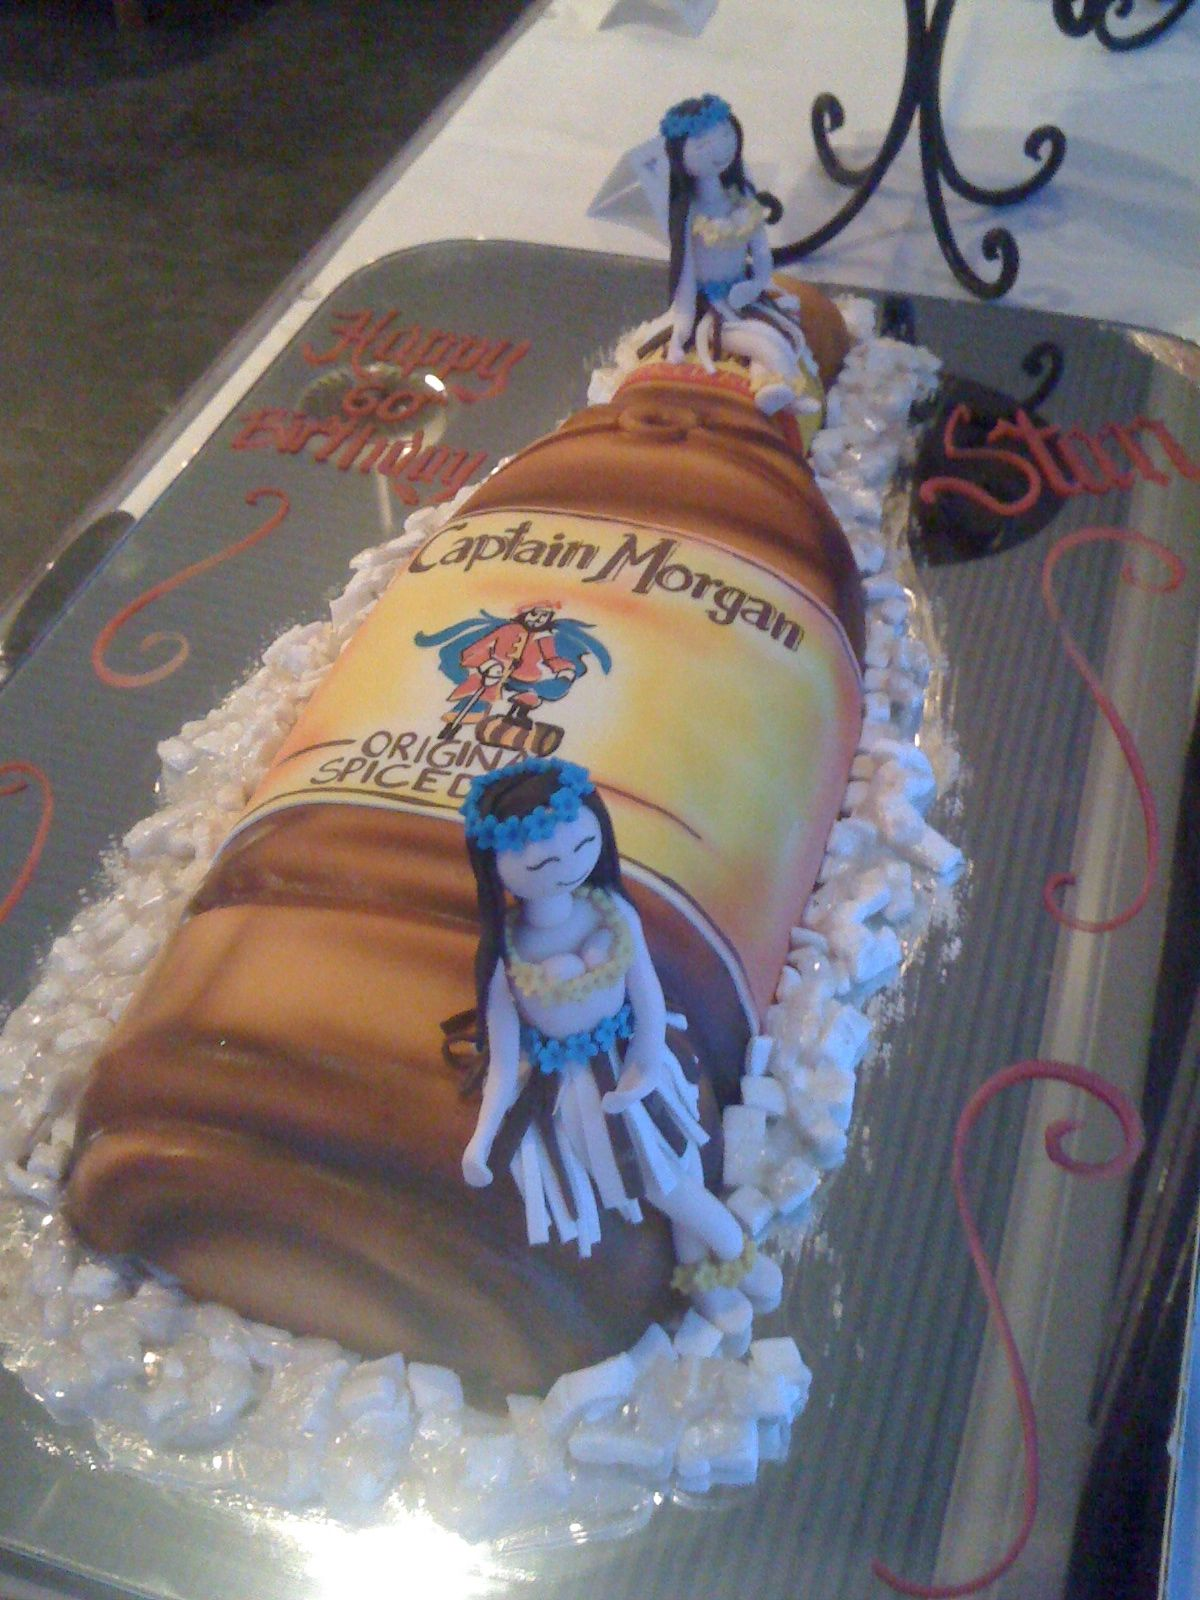 60th Birthday Cake Made By Sweet Art By Lucila In Miami Fl Captain Morgan Rum Bottle With Two Bodacious H 60th Birthday Cakes Boat Party Foods Rum Bottle